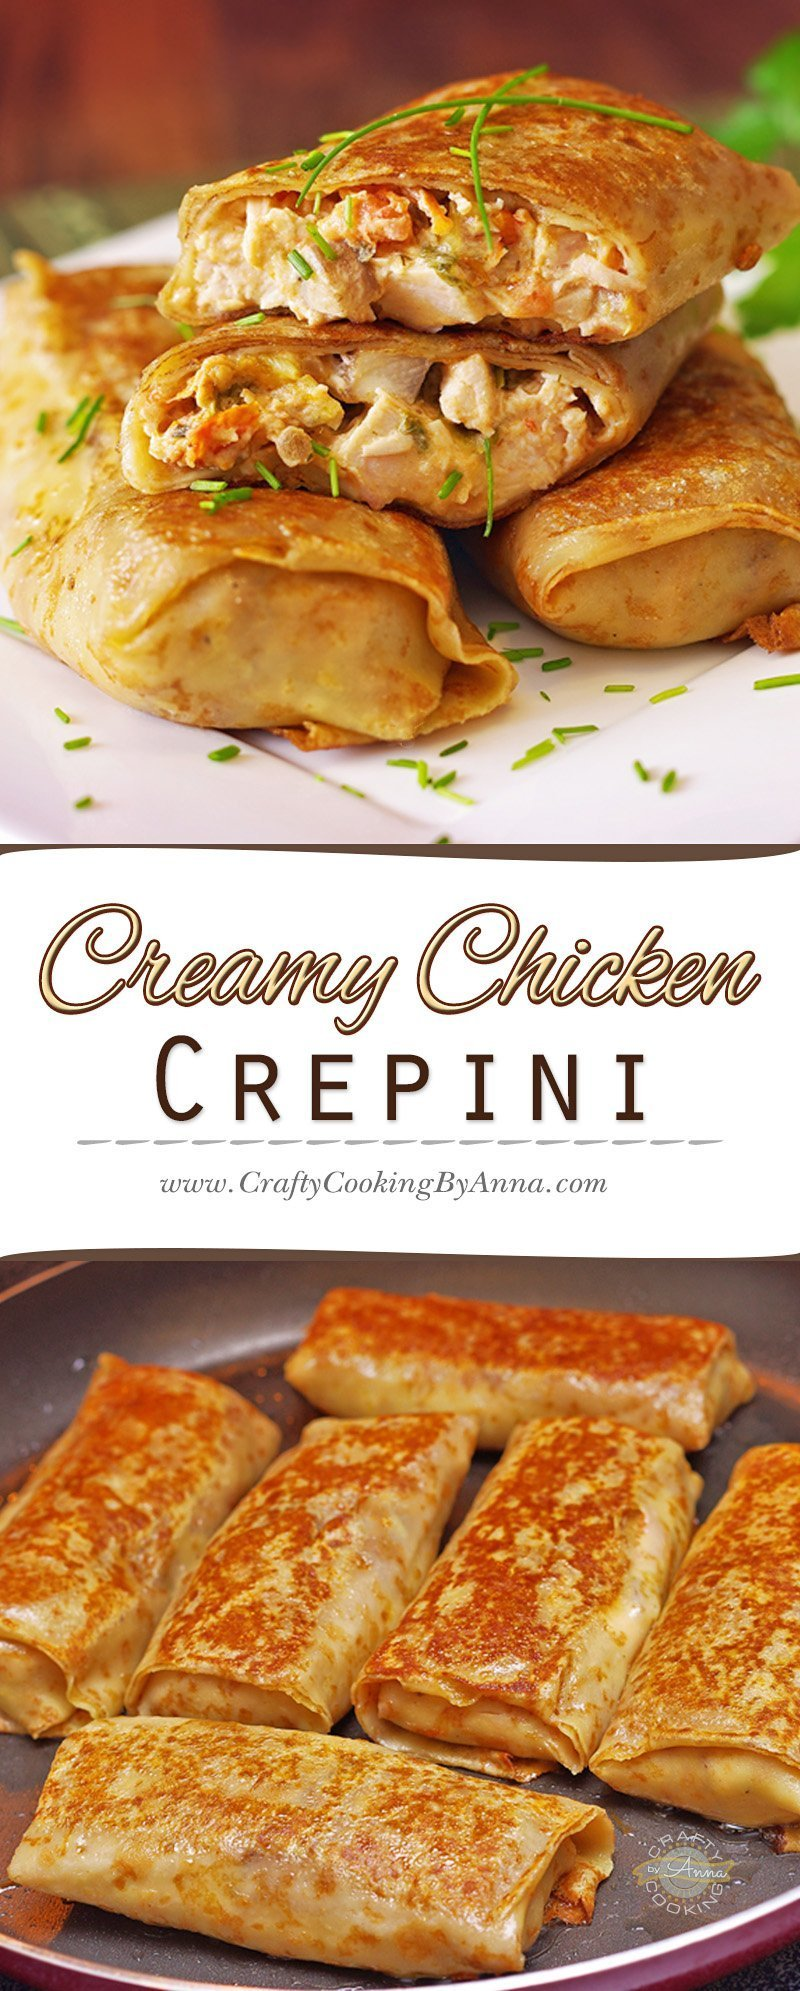 These stuffed crepini or Nalistniki , as we call them in Russian, are kid and adult friendly! Make Great Breakfast, Lunch or anytime Snack. #Crepini #Chicken #Crepes